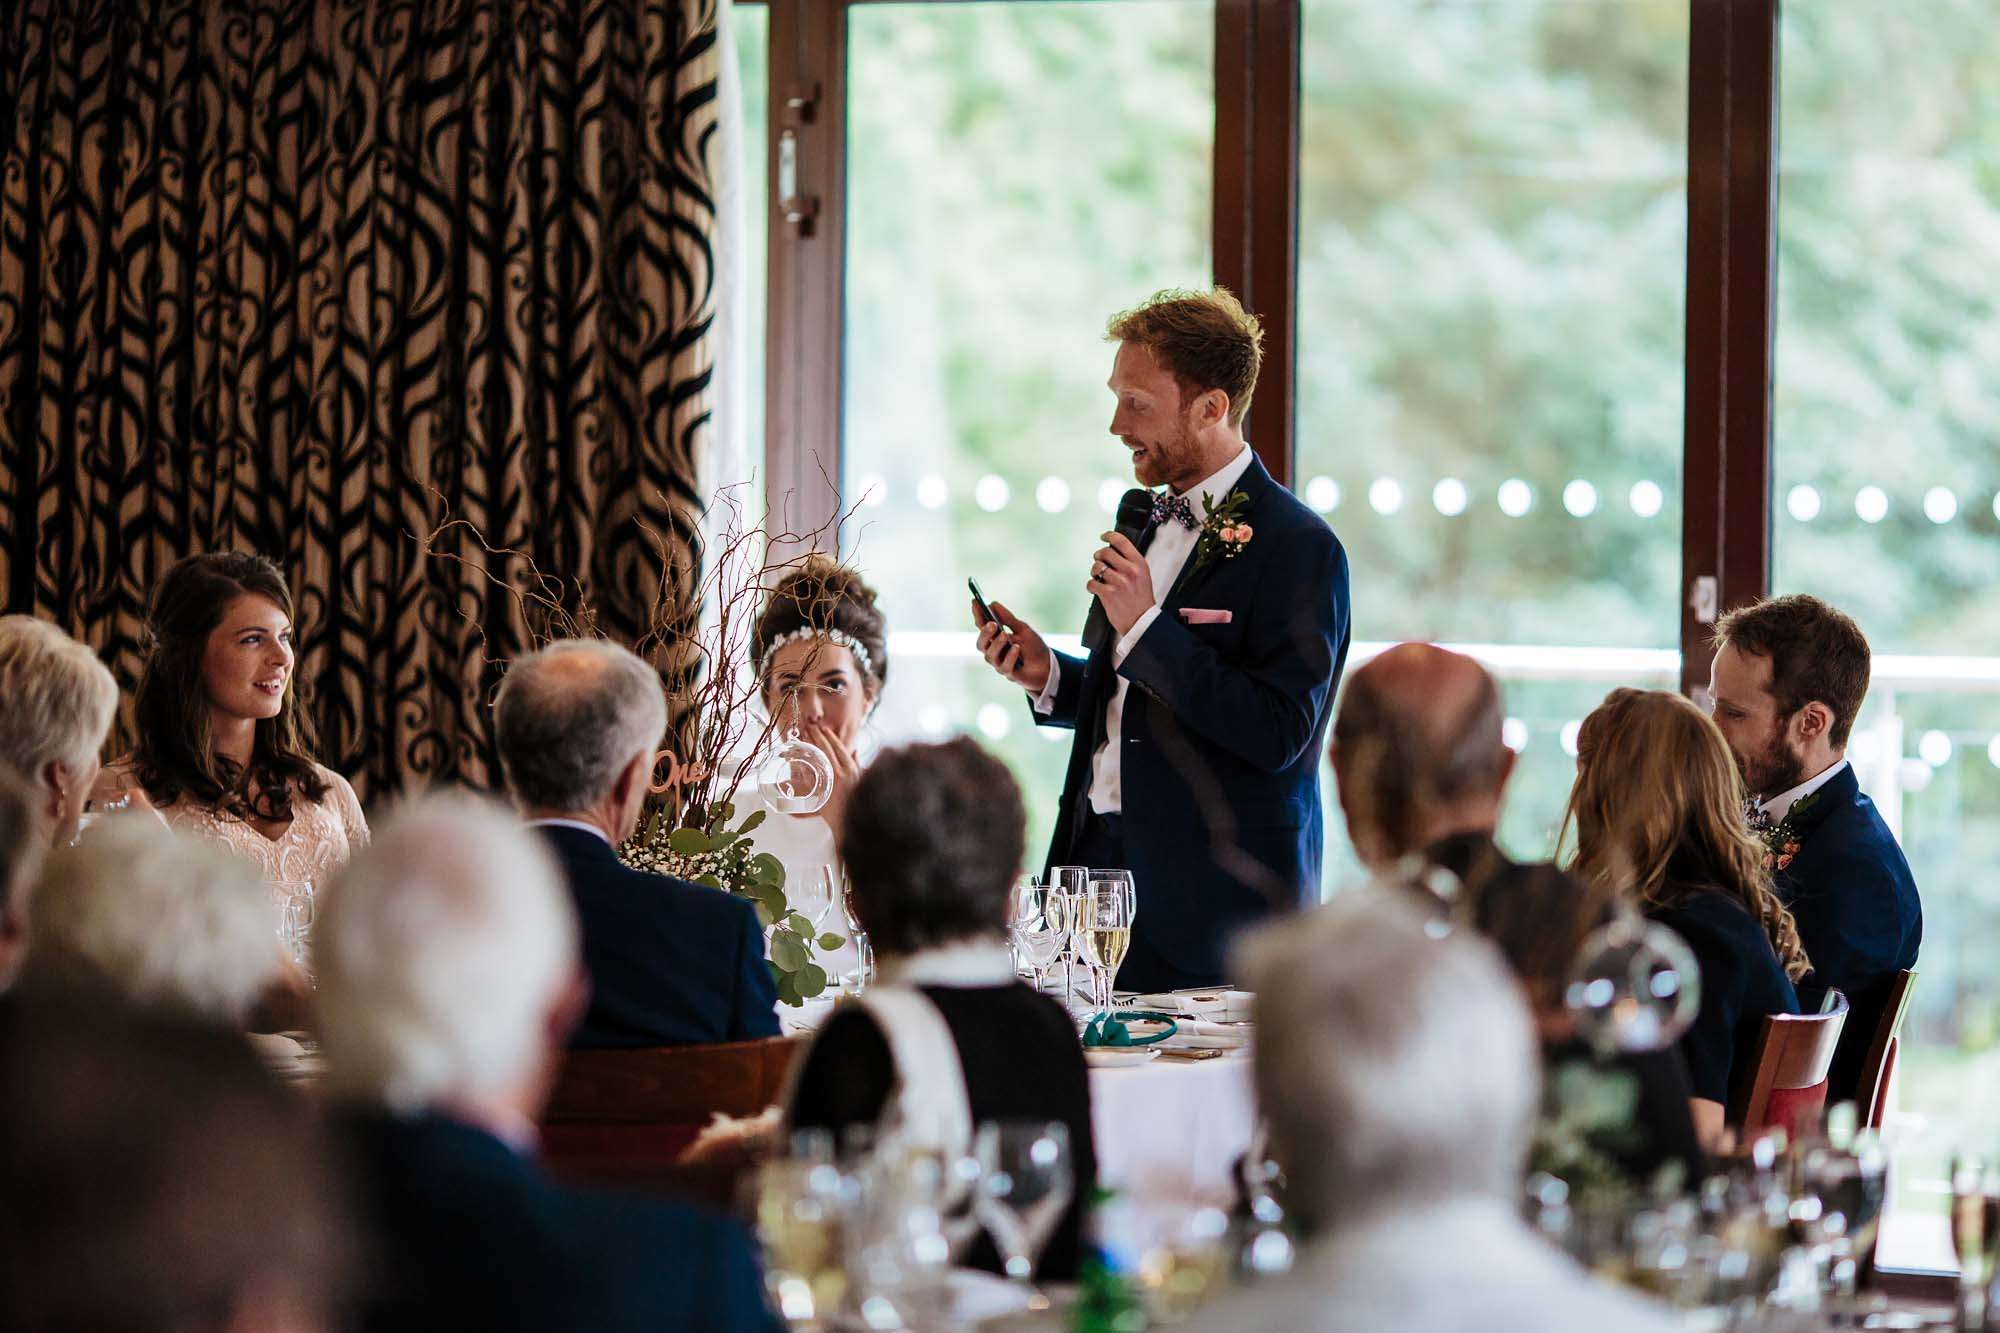 Grooms speech at his wedding at Armathwaite Hall